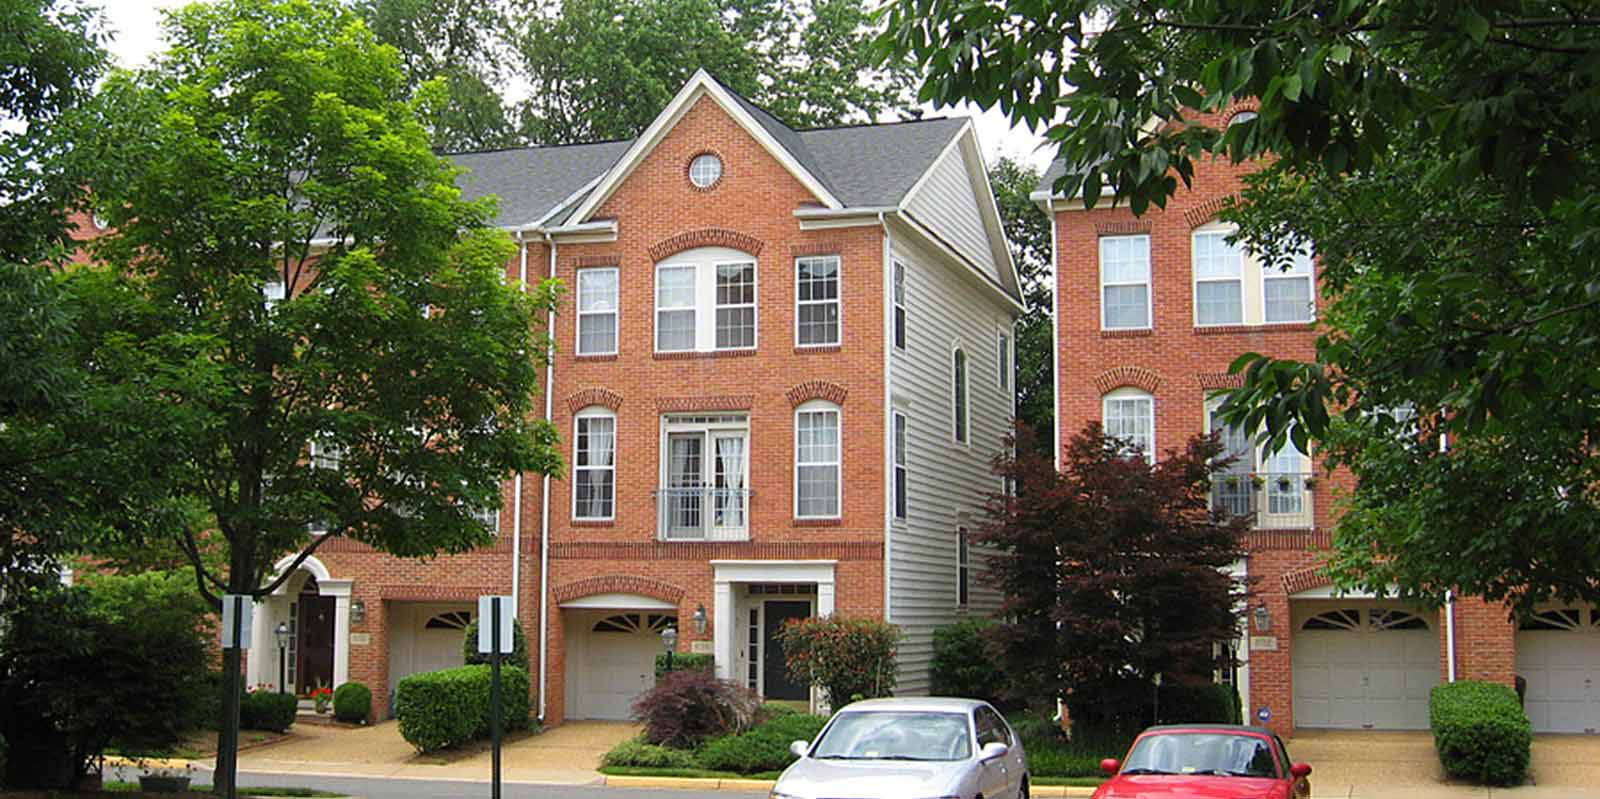 Laura Gilley - Potomac MD Real Estate